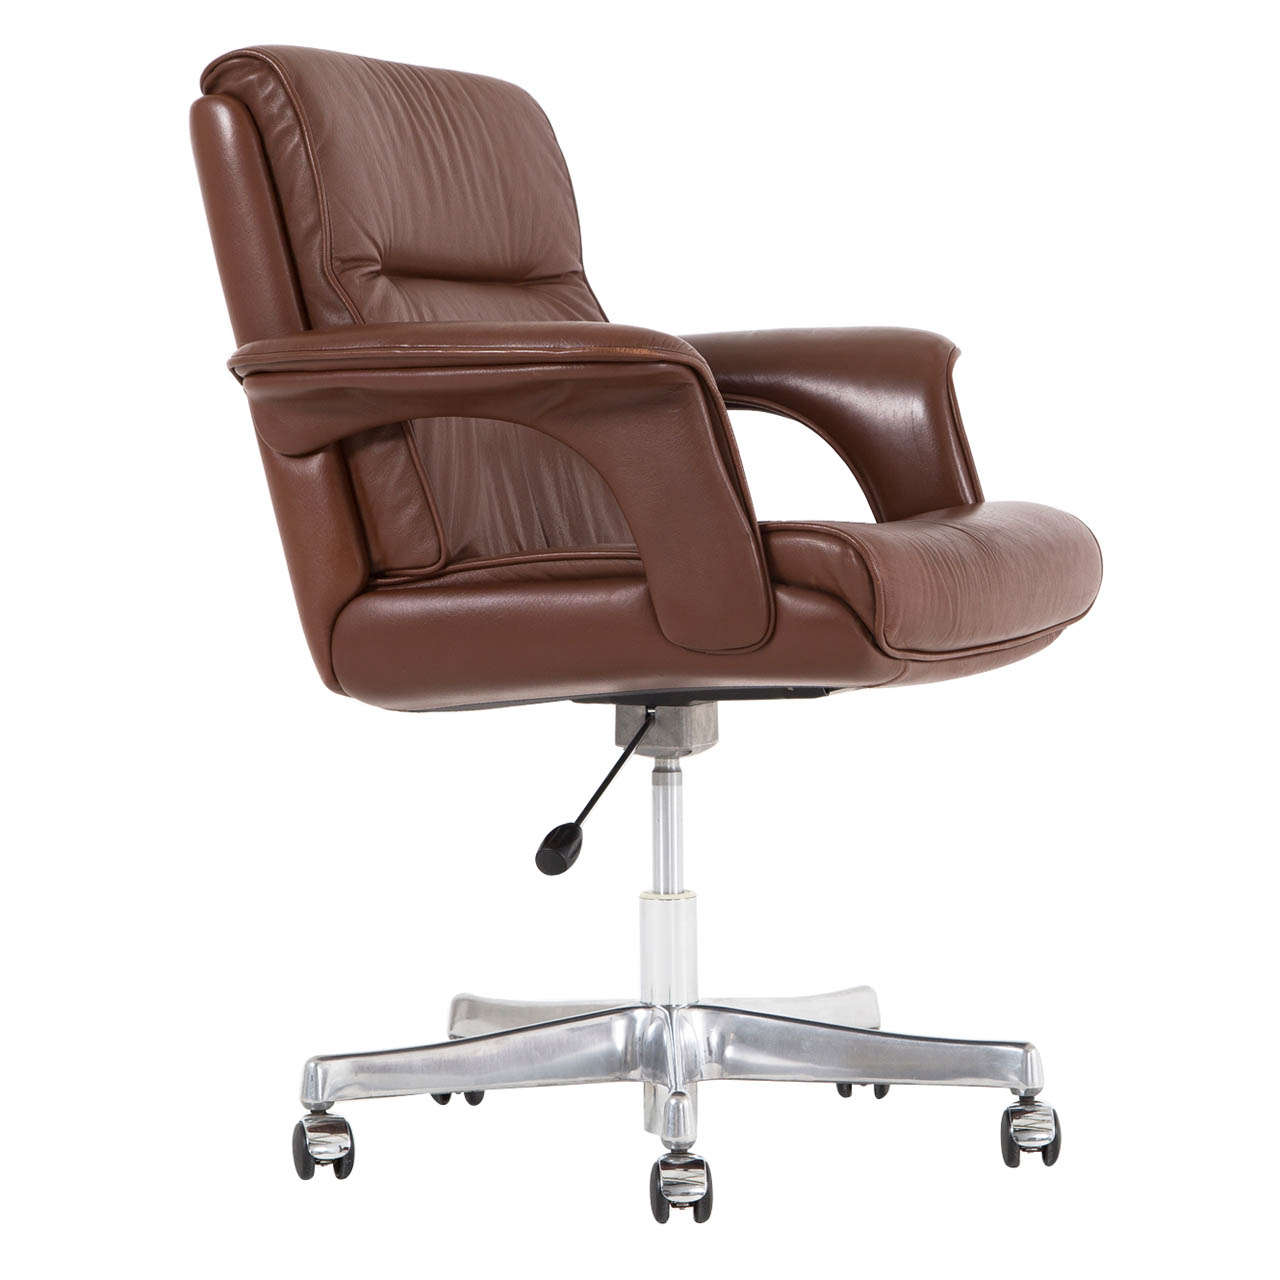 executive conference desk office chair in brown leather for sale